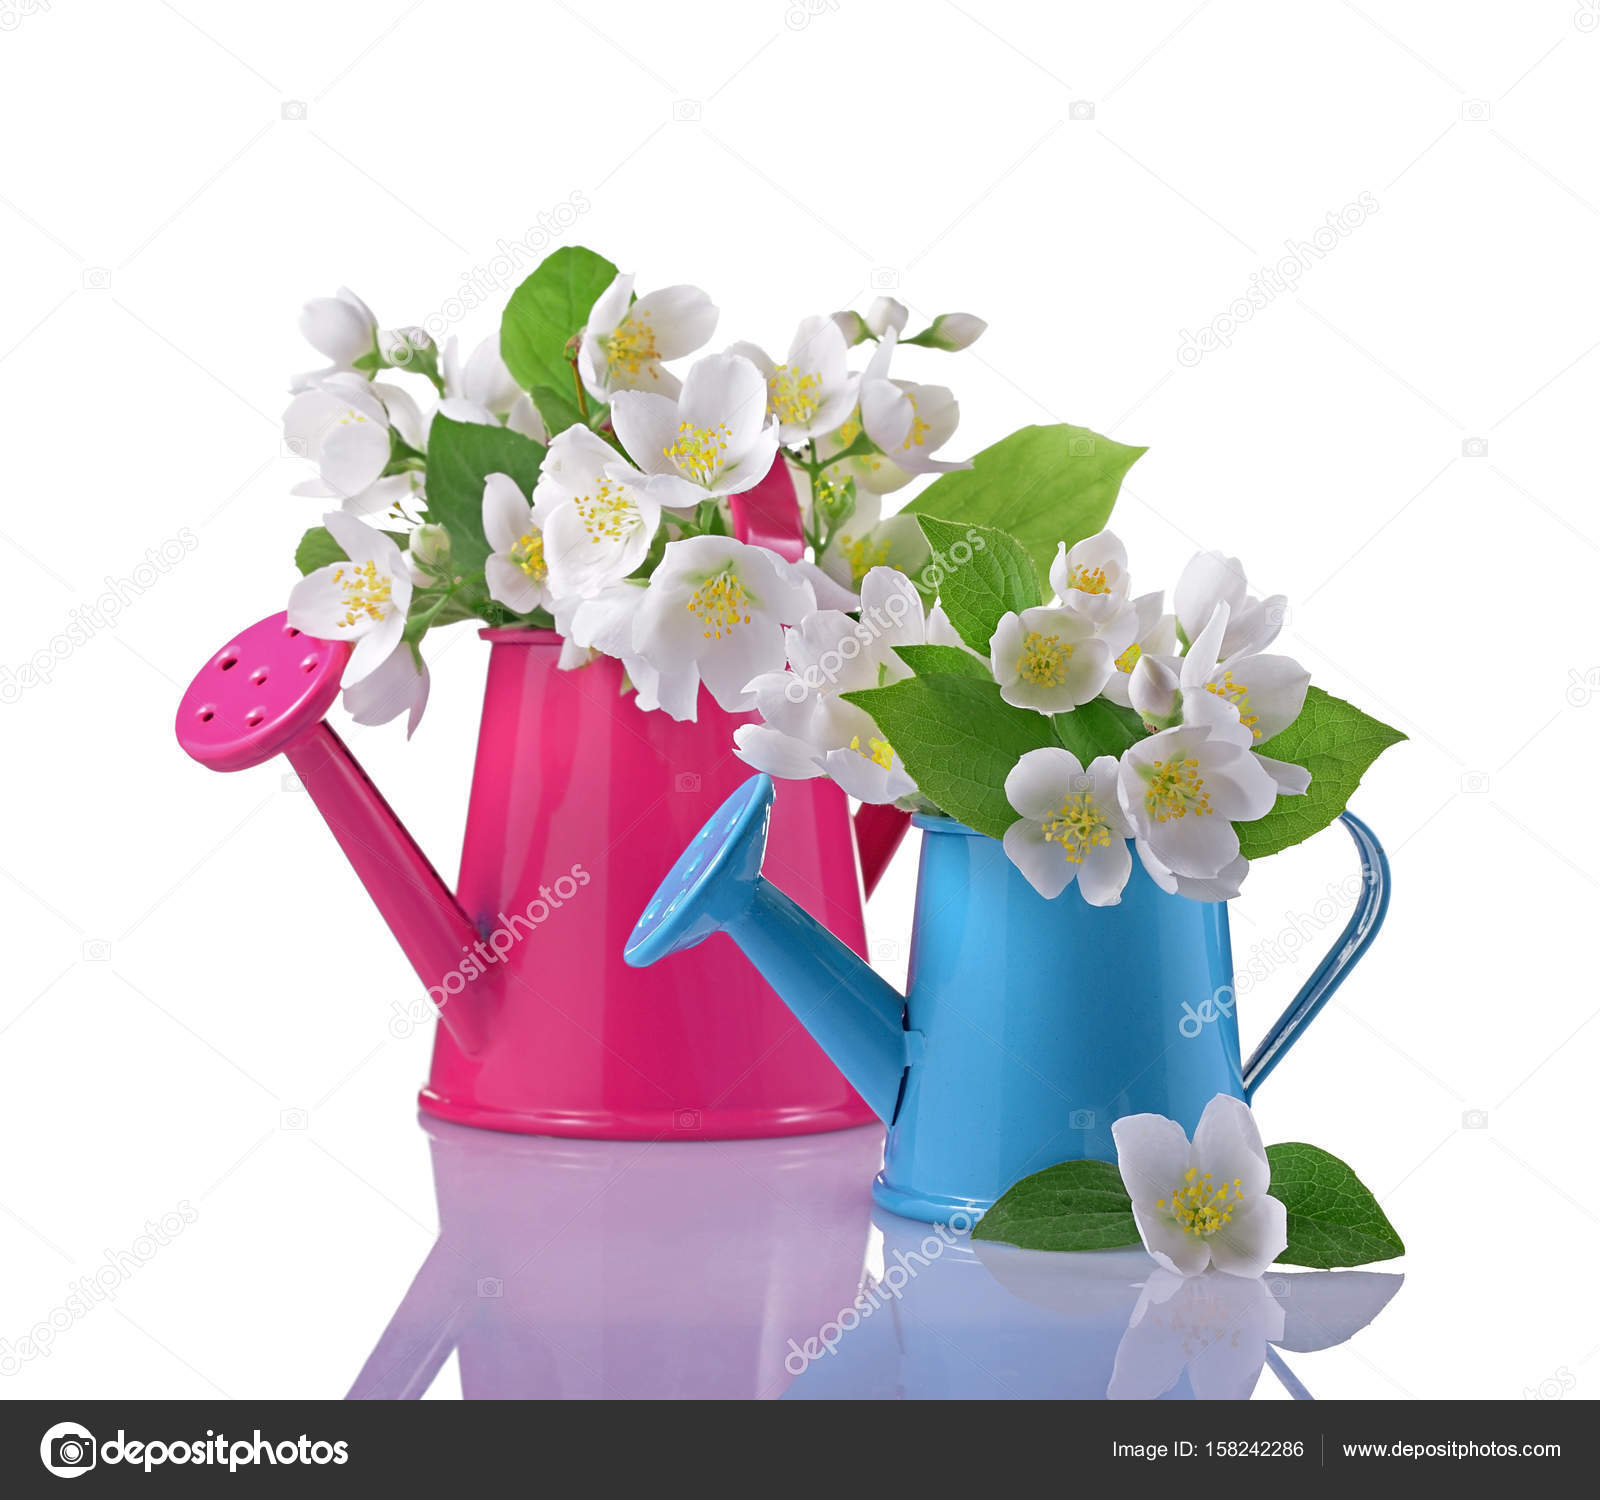 Bouquet of white jasmine flowers with leaves in pink and blue bouquet of white jasmine flowers with leaves in pink and blue watering cans isolated on white background photo by viktoriya89 izmirmasajfo